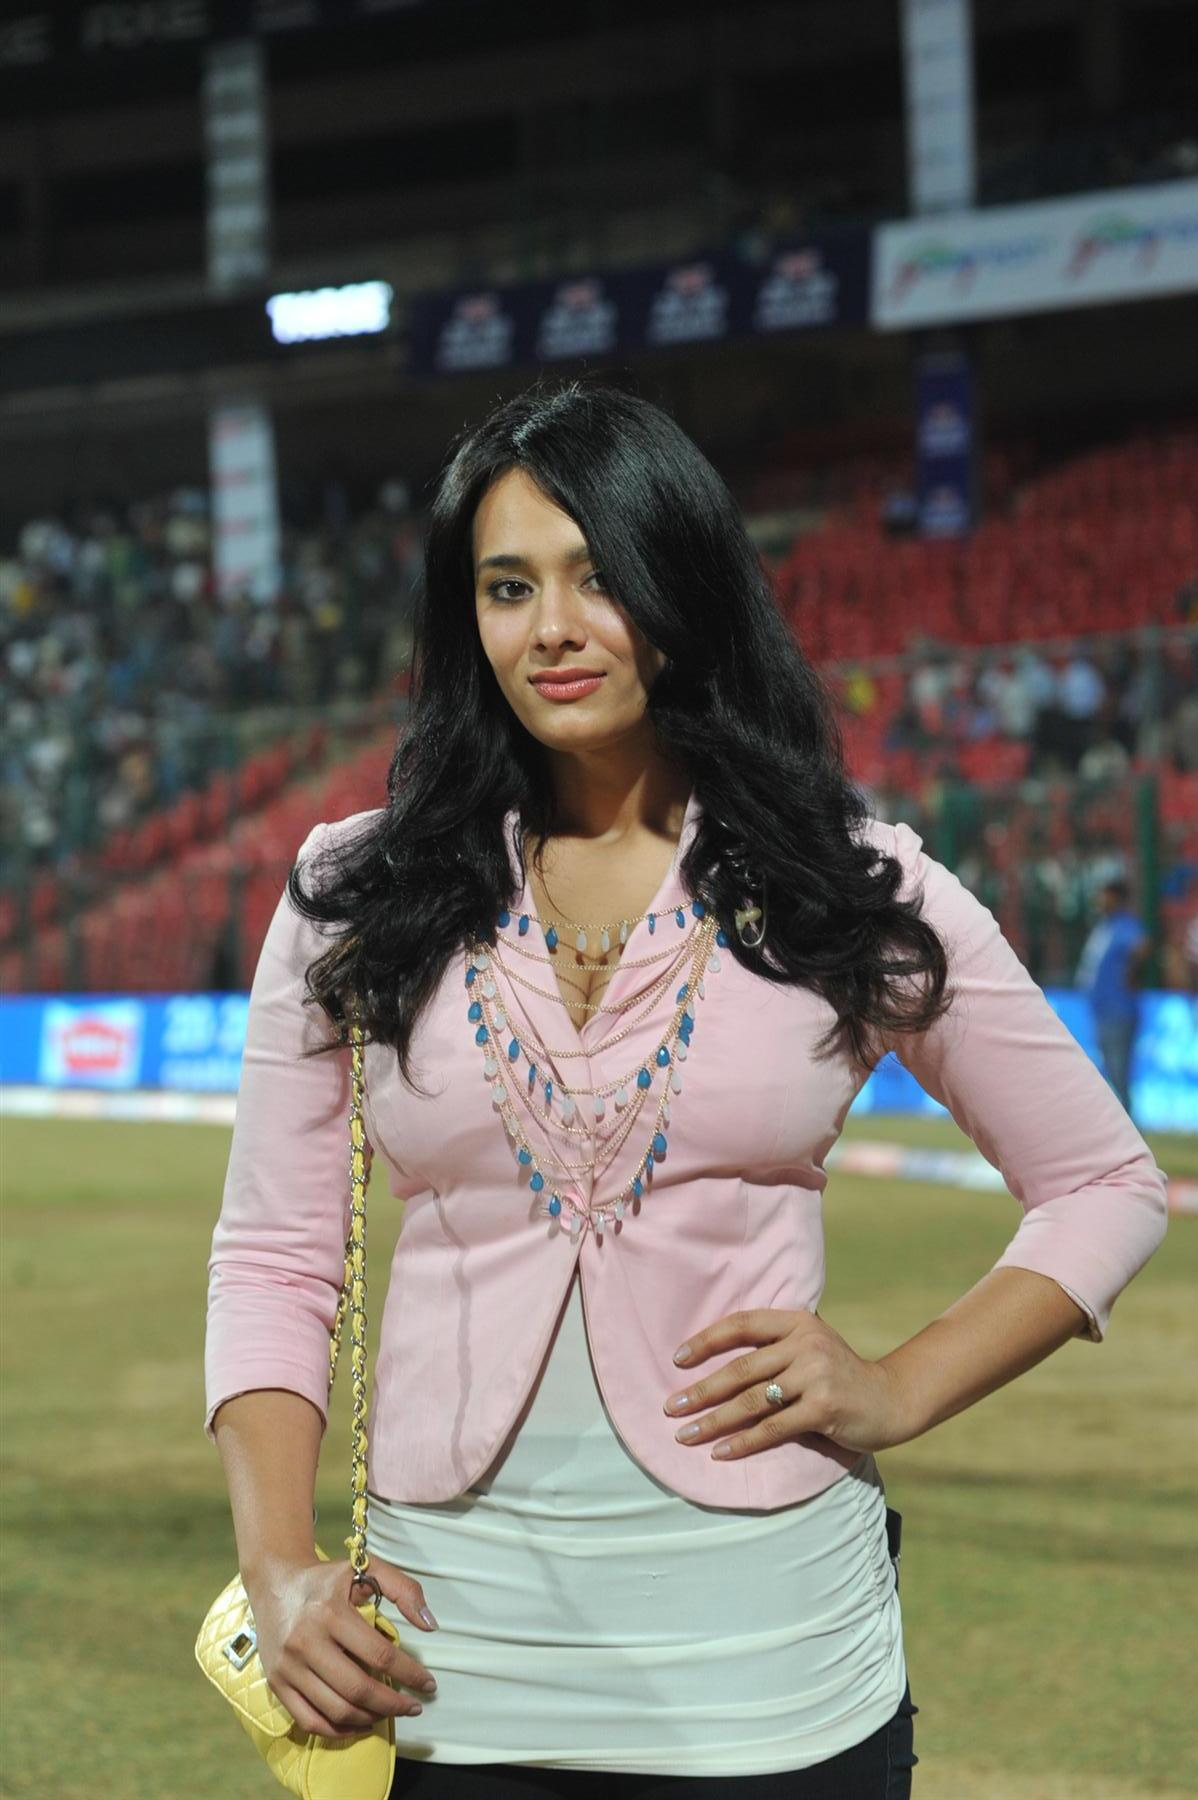 25-photos-of-hottest-sports-journalist-mayanti-langer-indian-tv-anchors-22